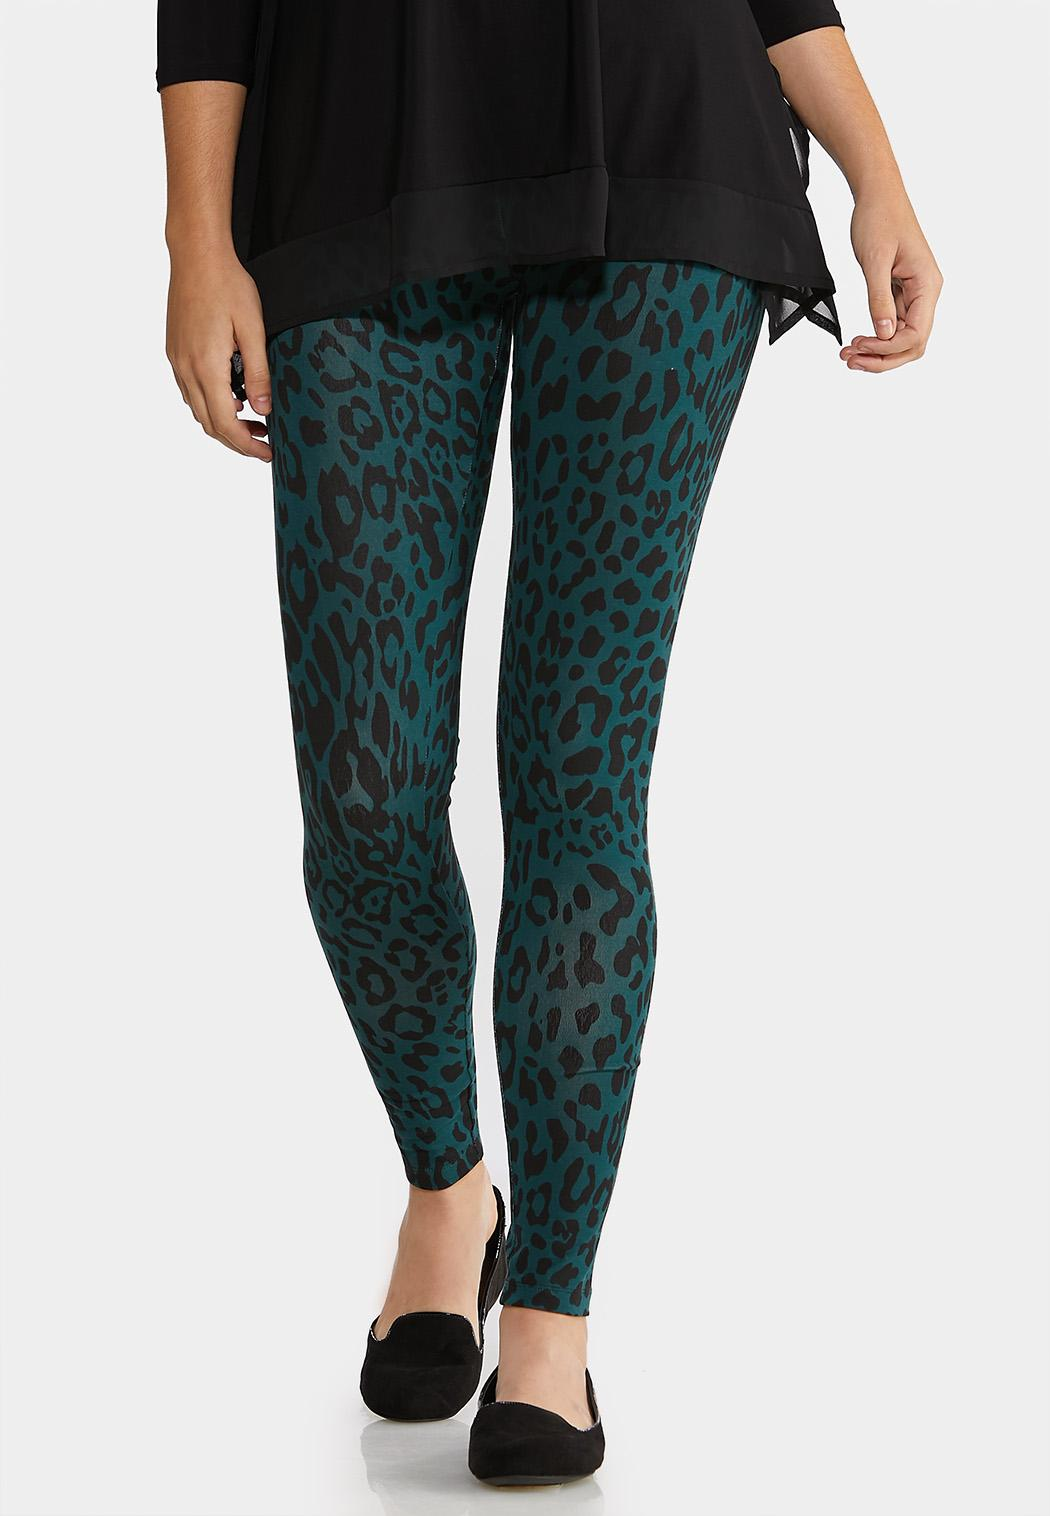 Green Leopard Leggings